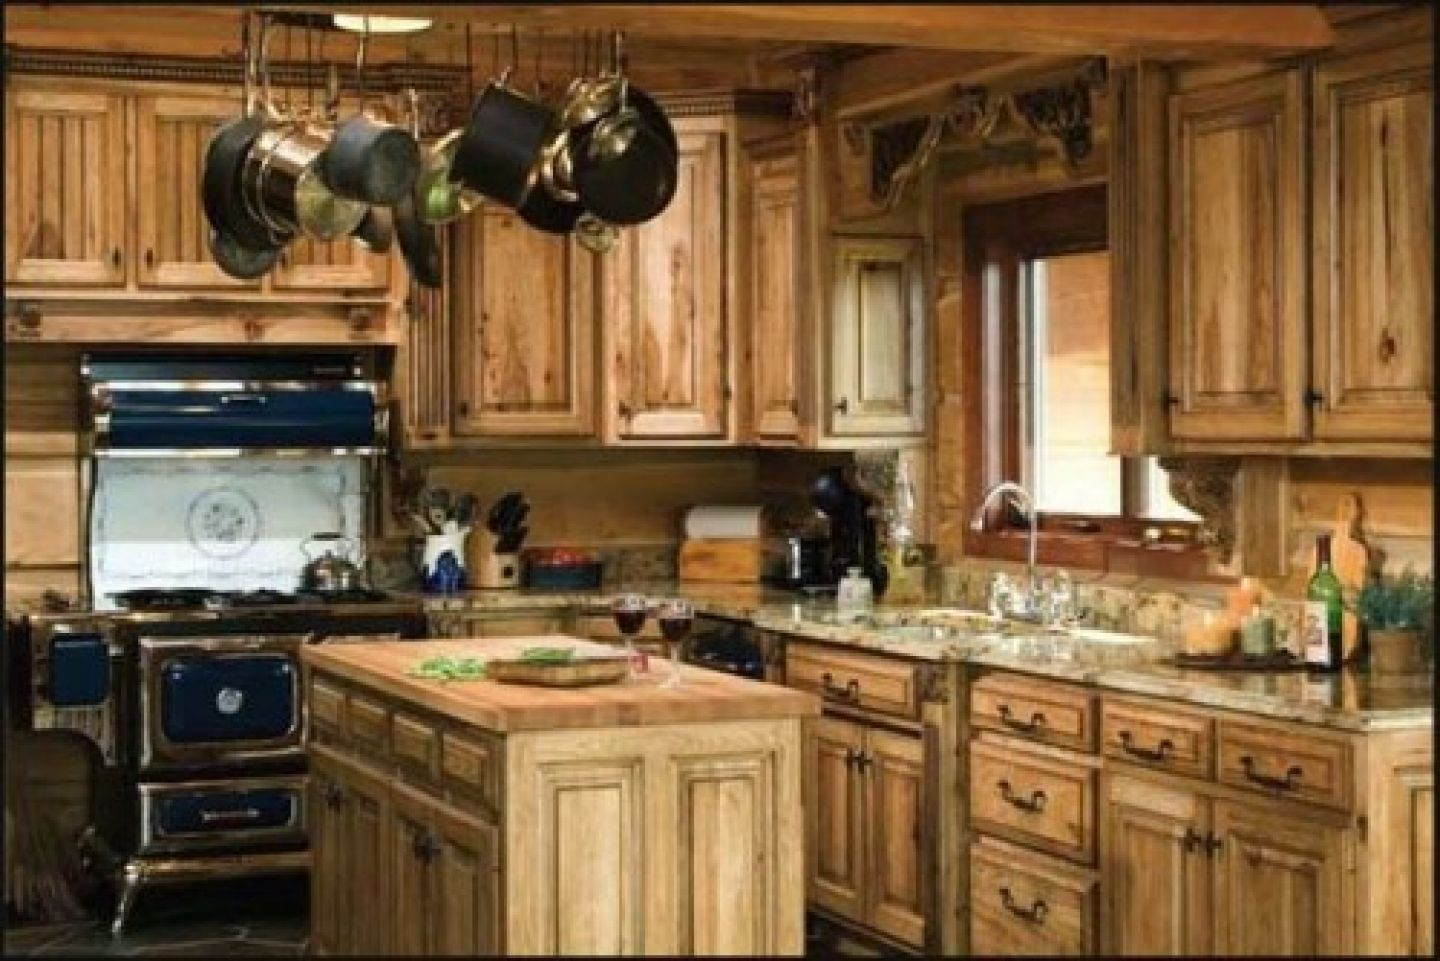 Best Rustic Kitchen With Wooden Furniture and